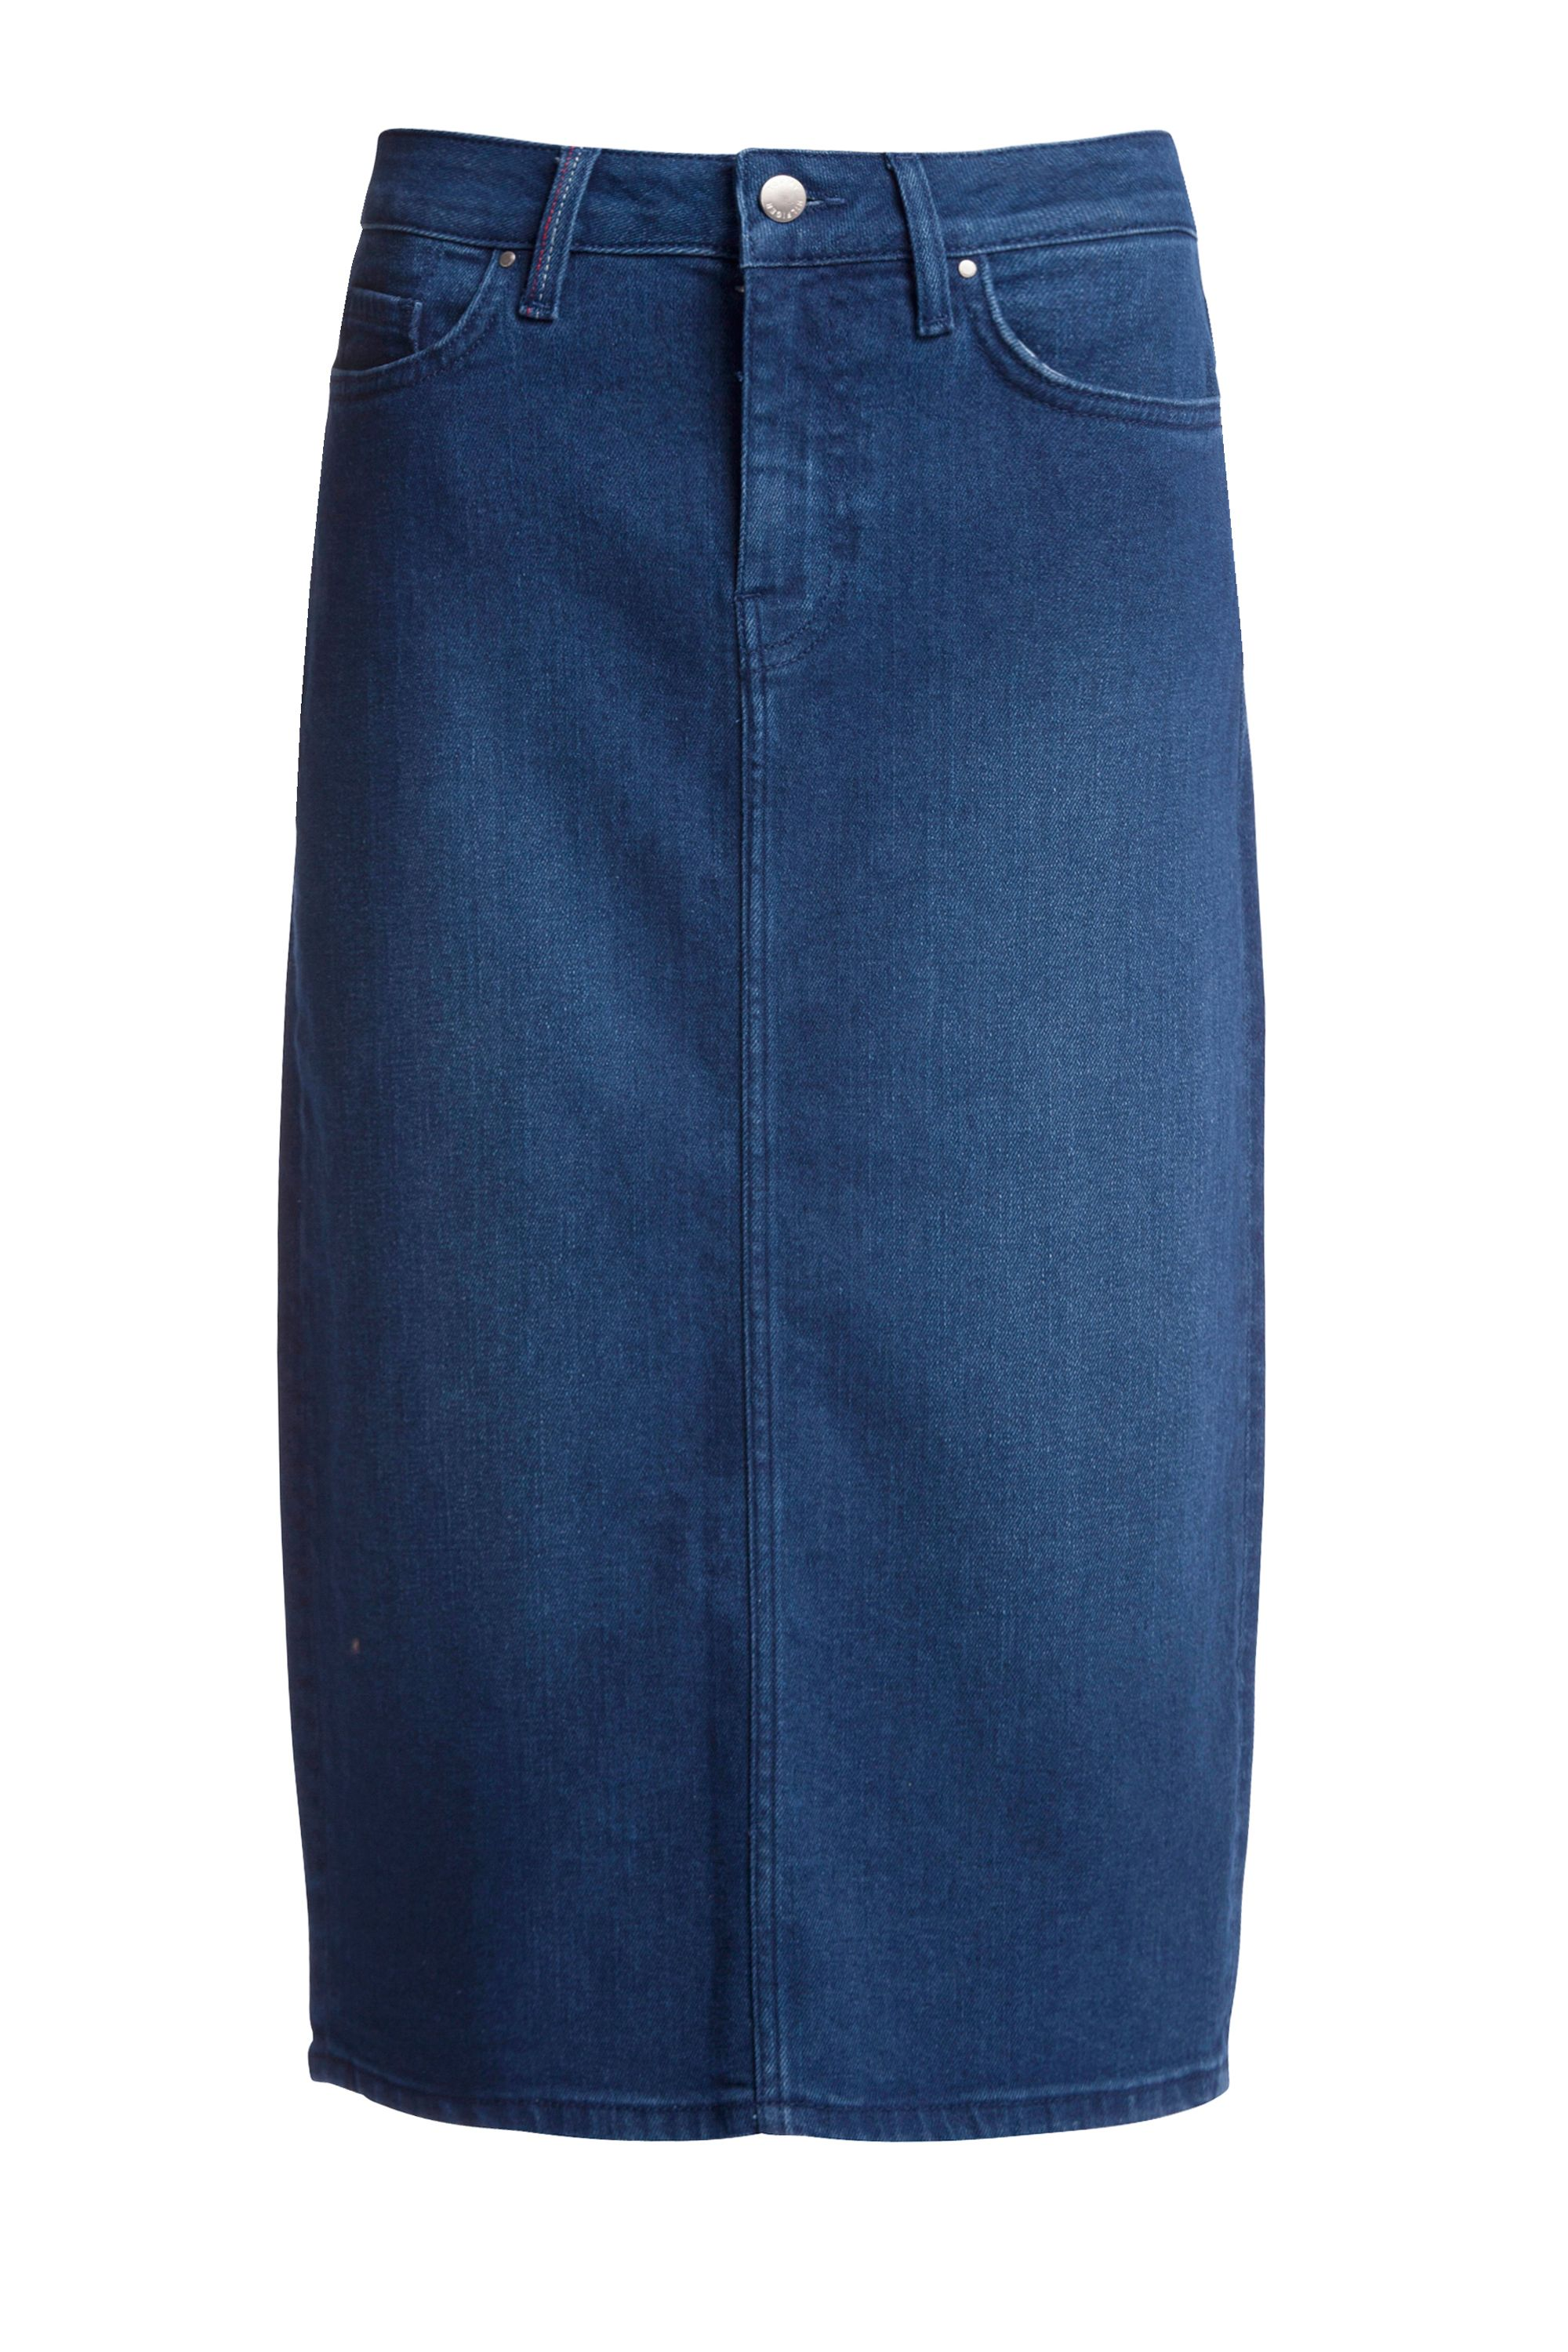 Tommy Hilfiger Rome Long Timi Skirt, Blue